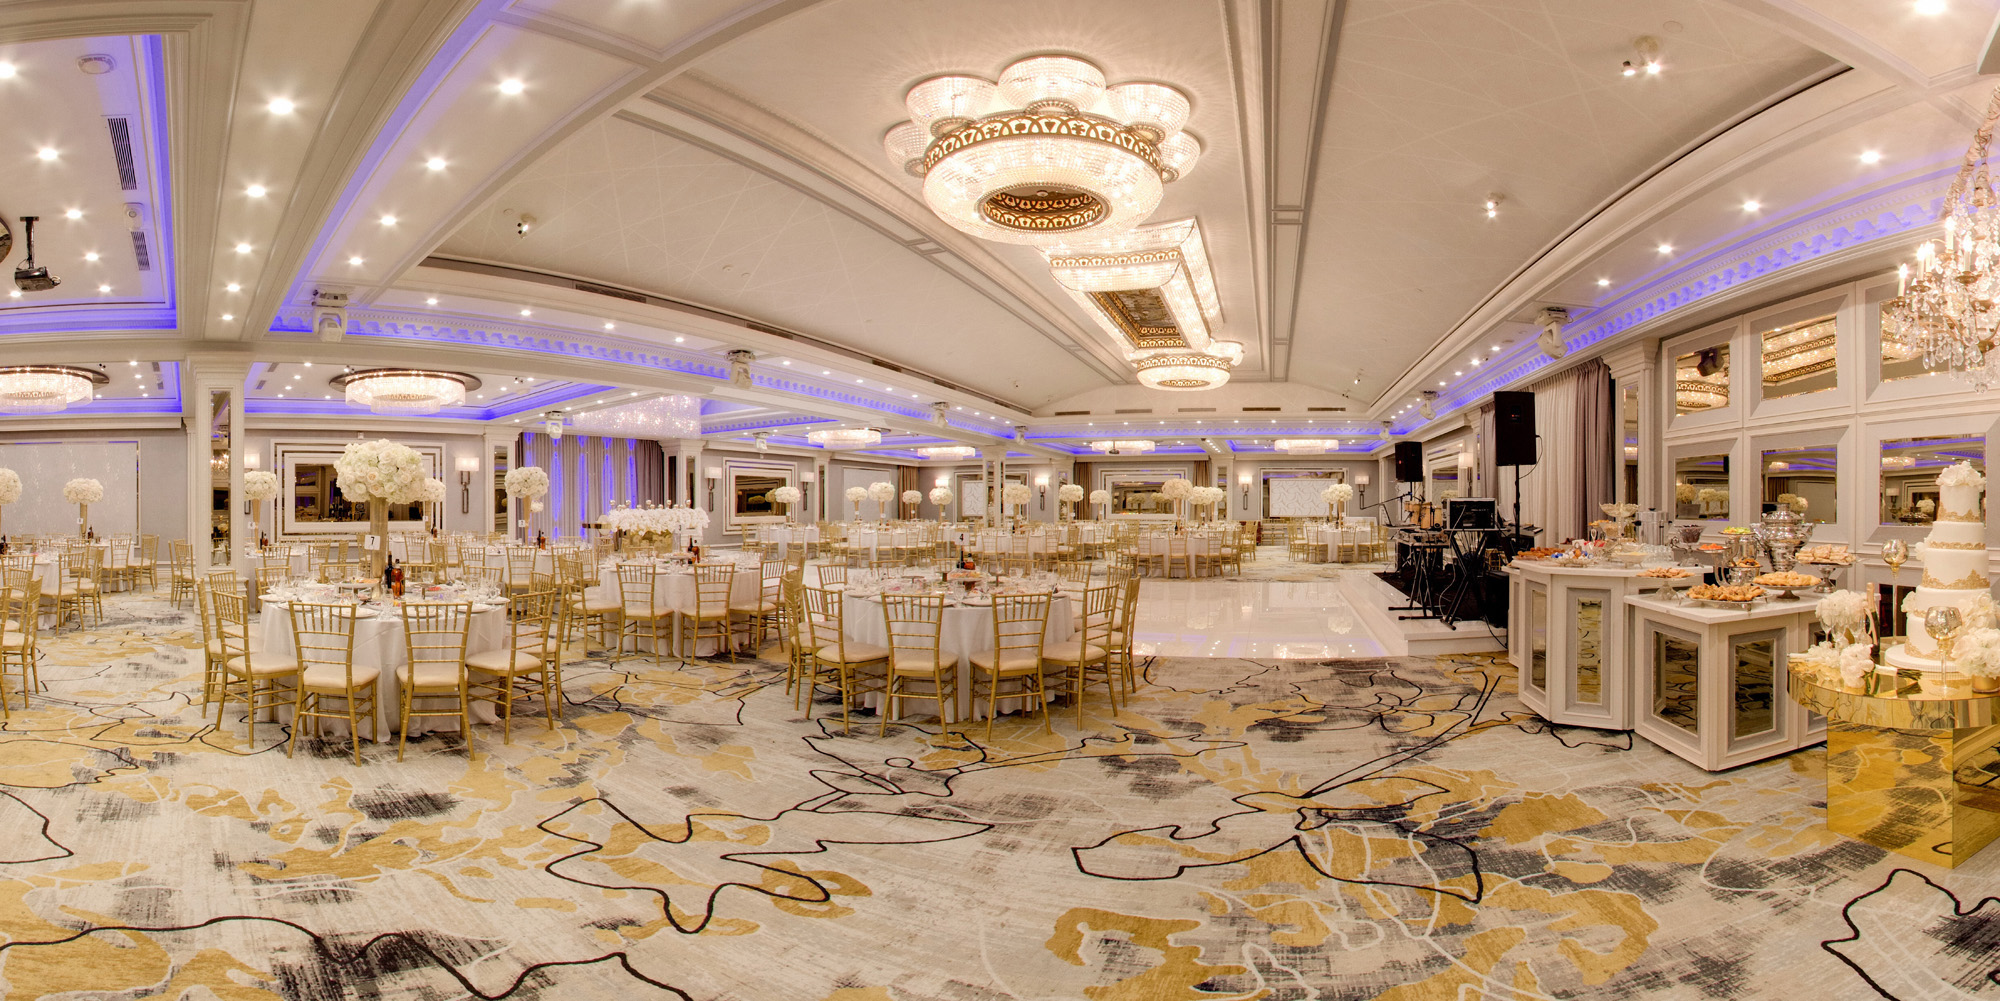 Contemporary Event Amp Wedding Venues In Glendale Ca